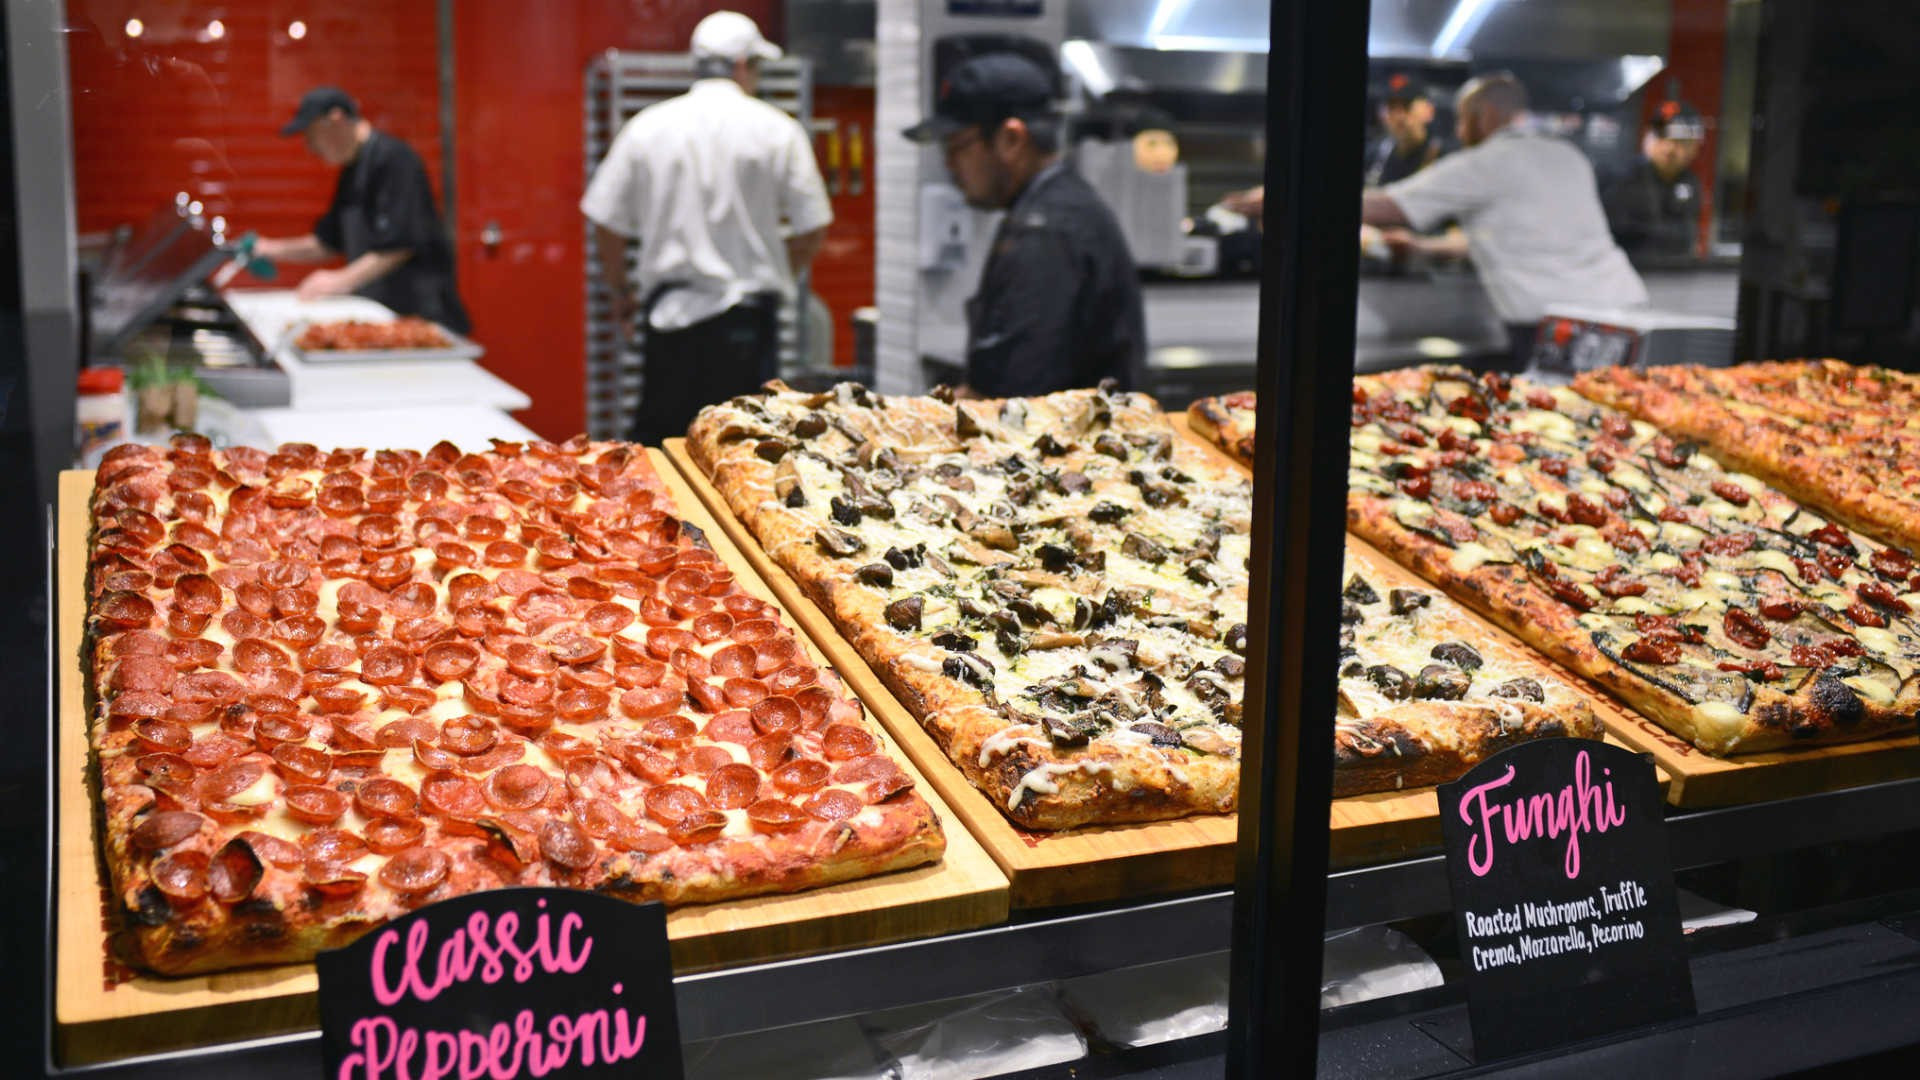 The best pizza in Toronto | Pizzas in the display case at Fabbrica in the TD Centre